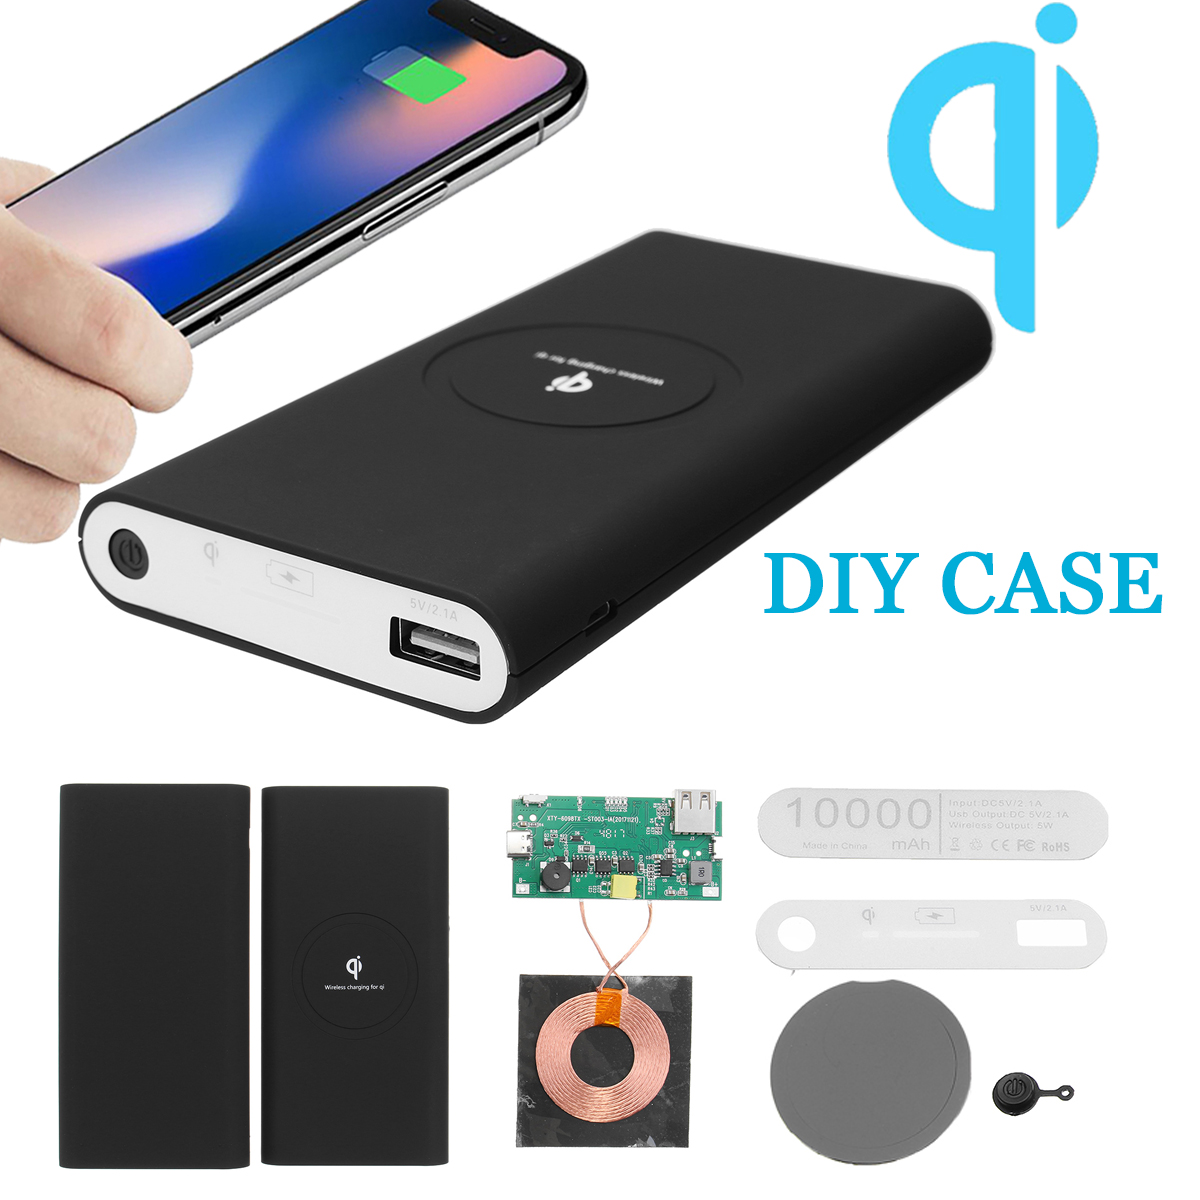 QI Power Bank Charger DIY Case Kit Wireless Charging USB Type-C for Samsung Galaxy Note 8 S9/S8/S8 Plus/S7 Edge/S7 & all chargingpad Qi-Enabled Cell Phone